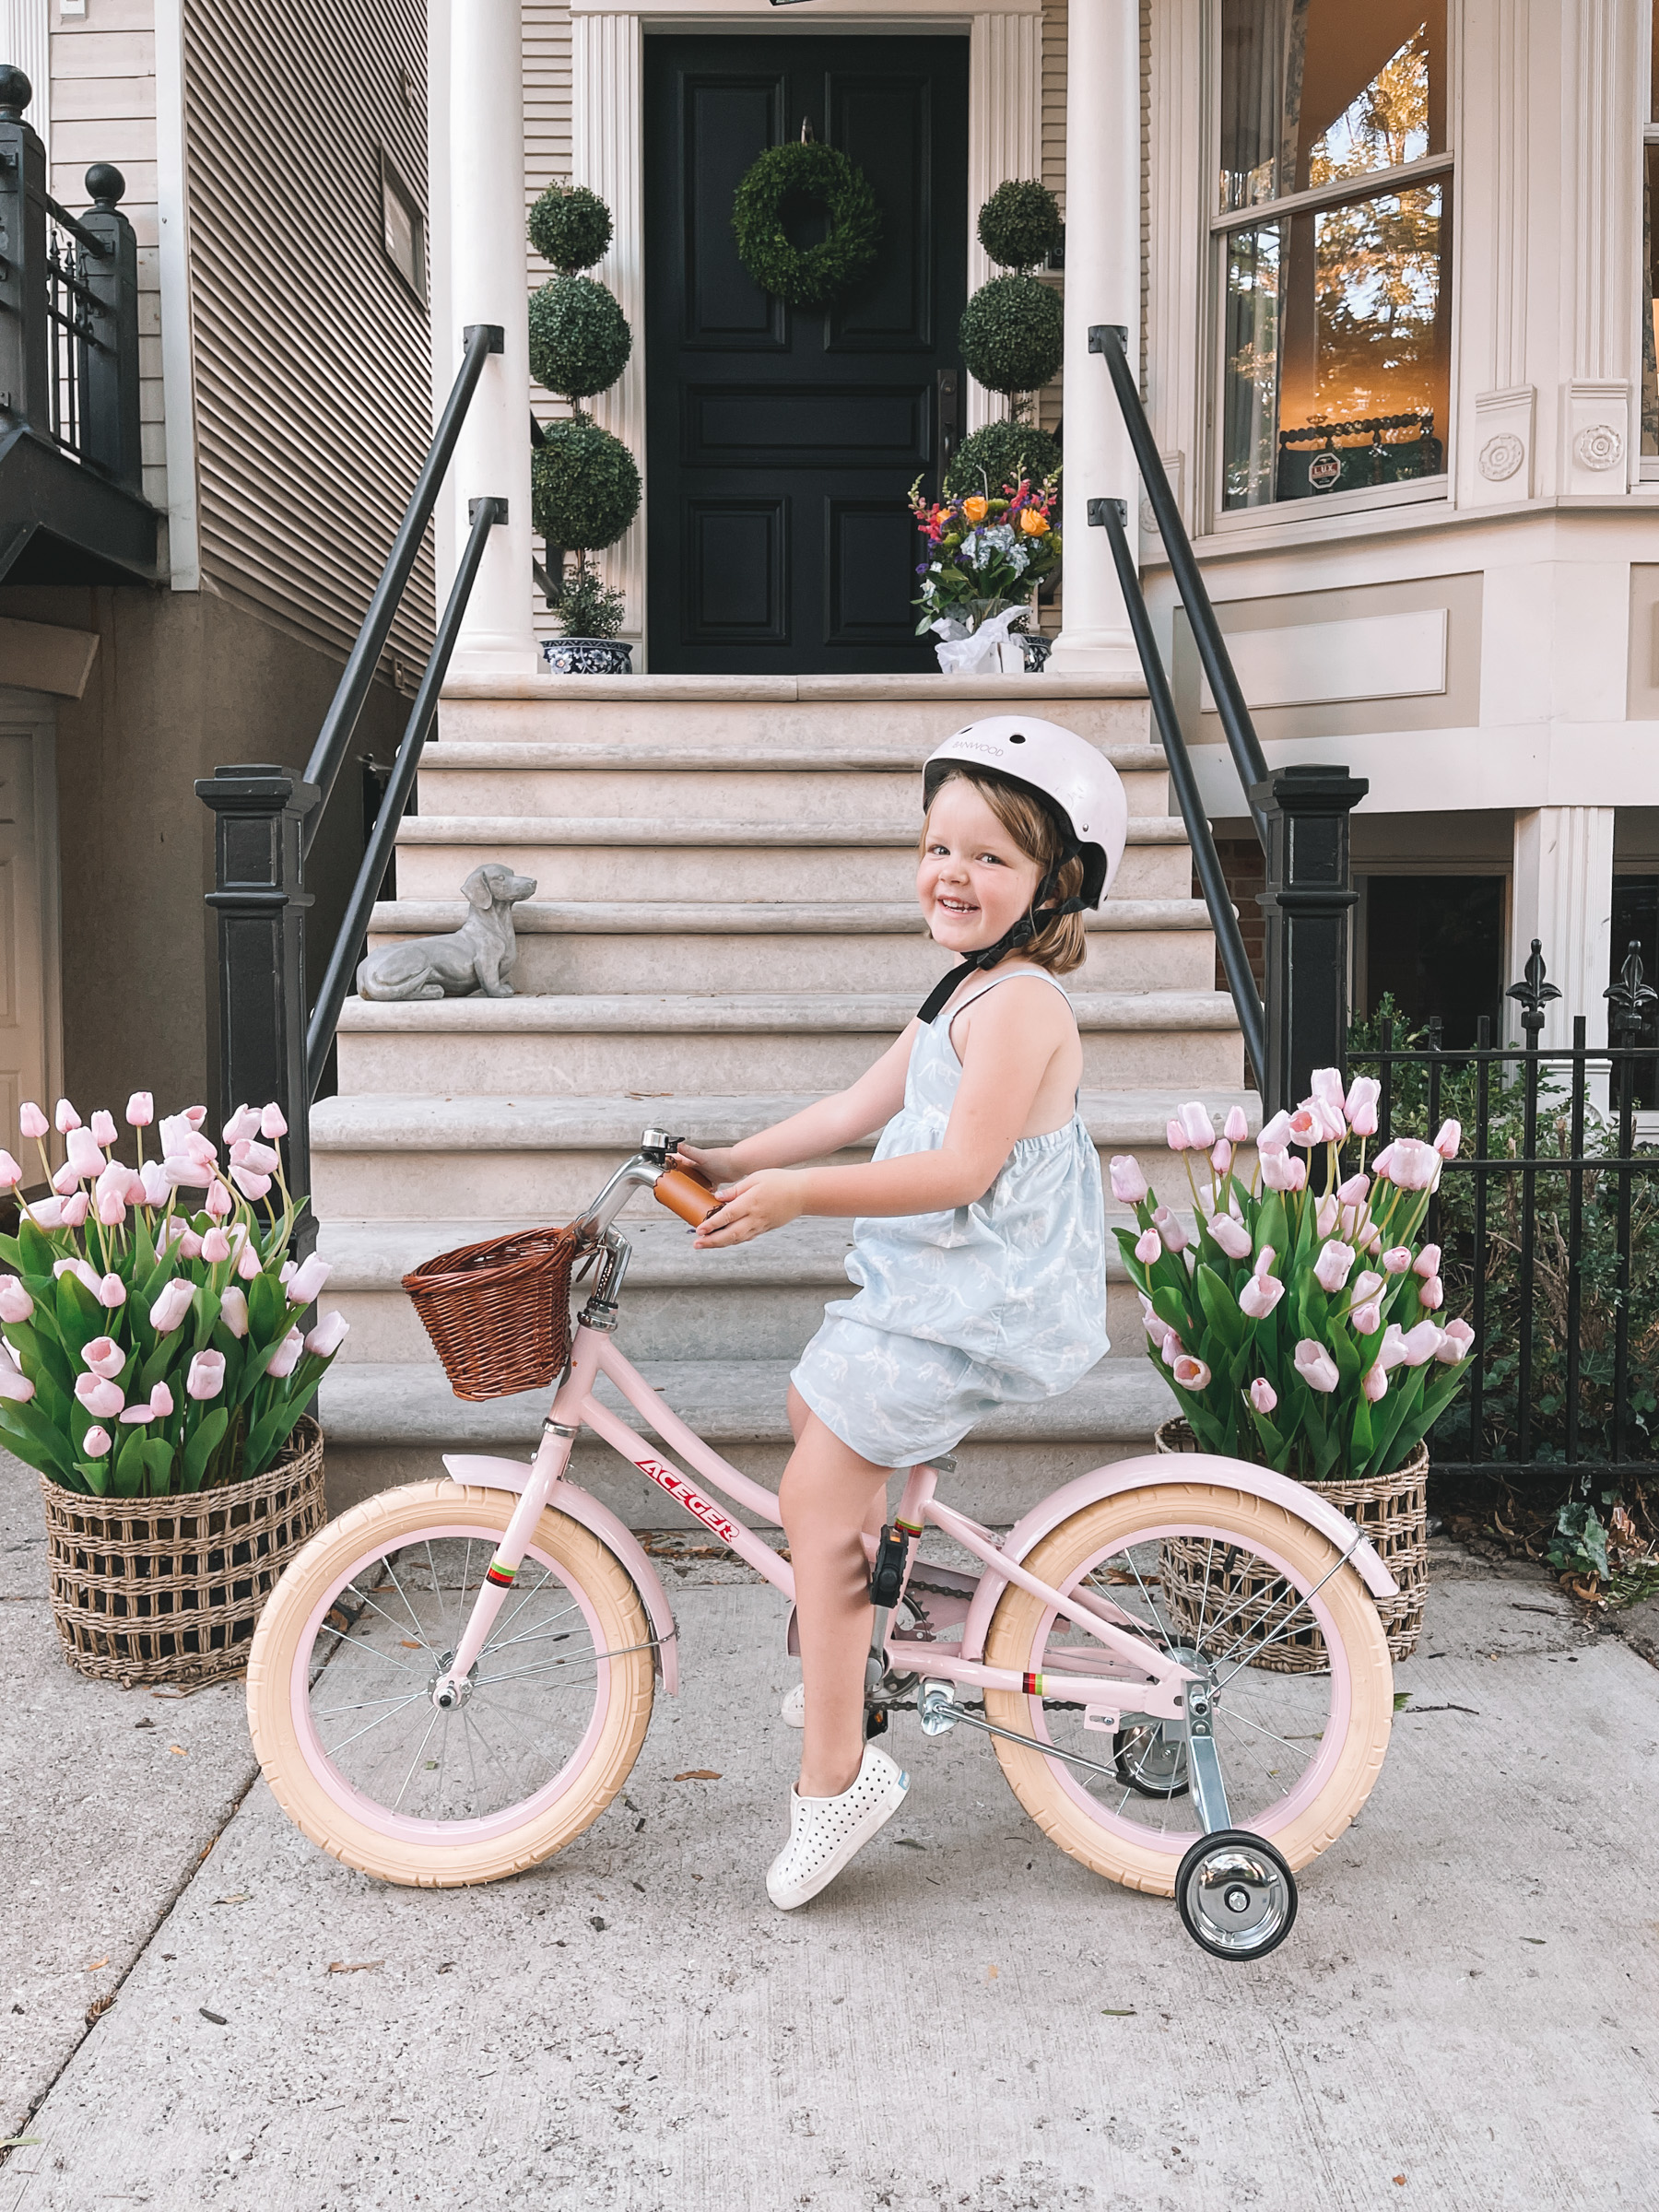 Affordable Amazon Bike for kids